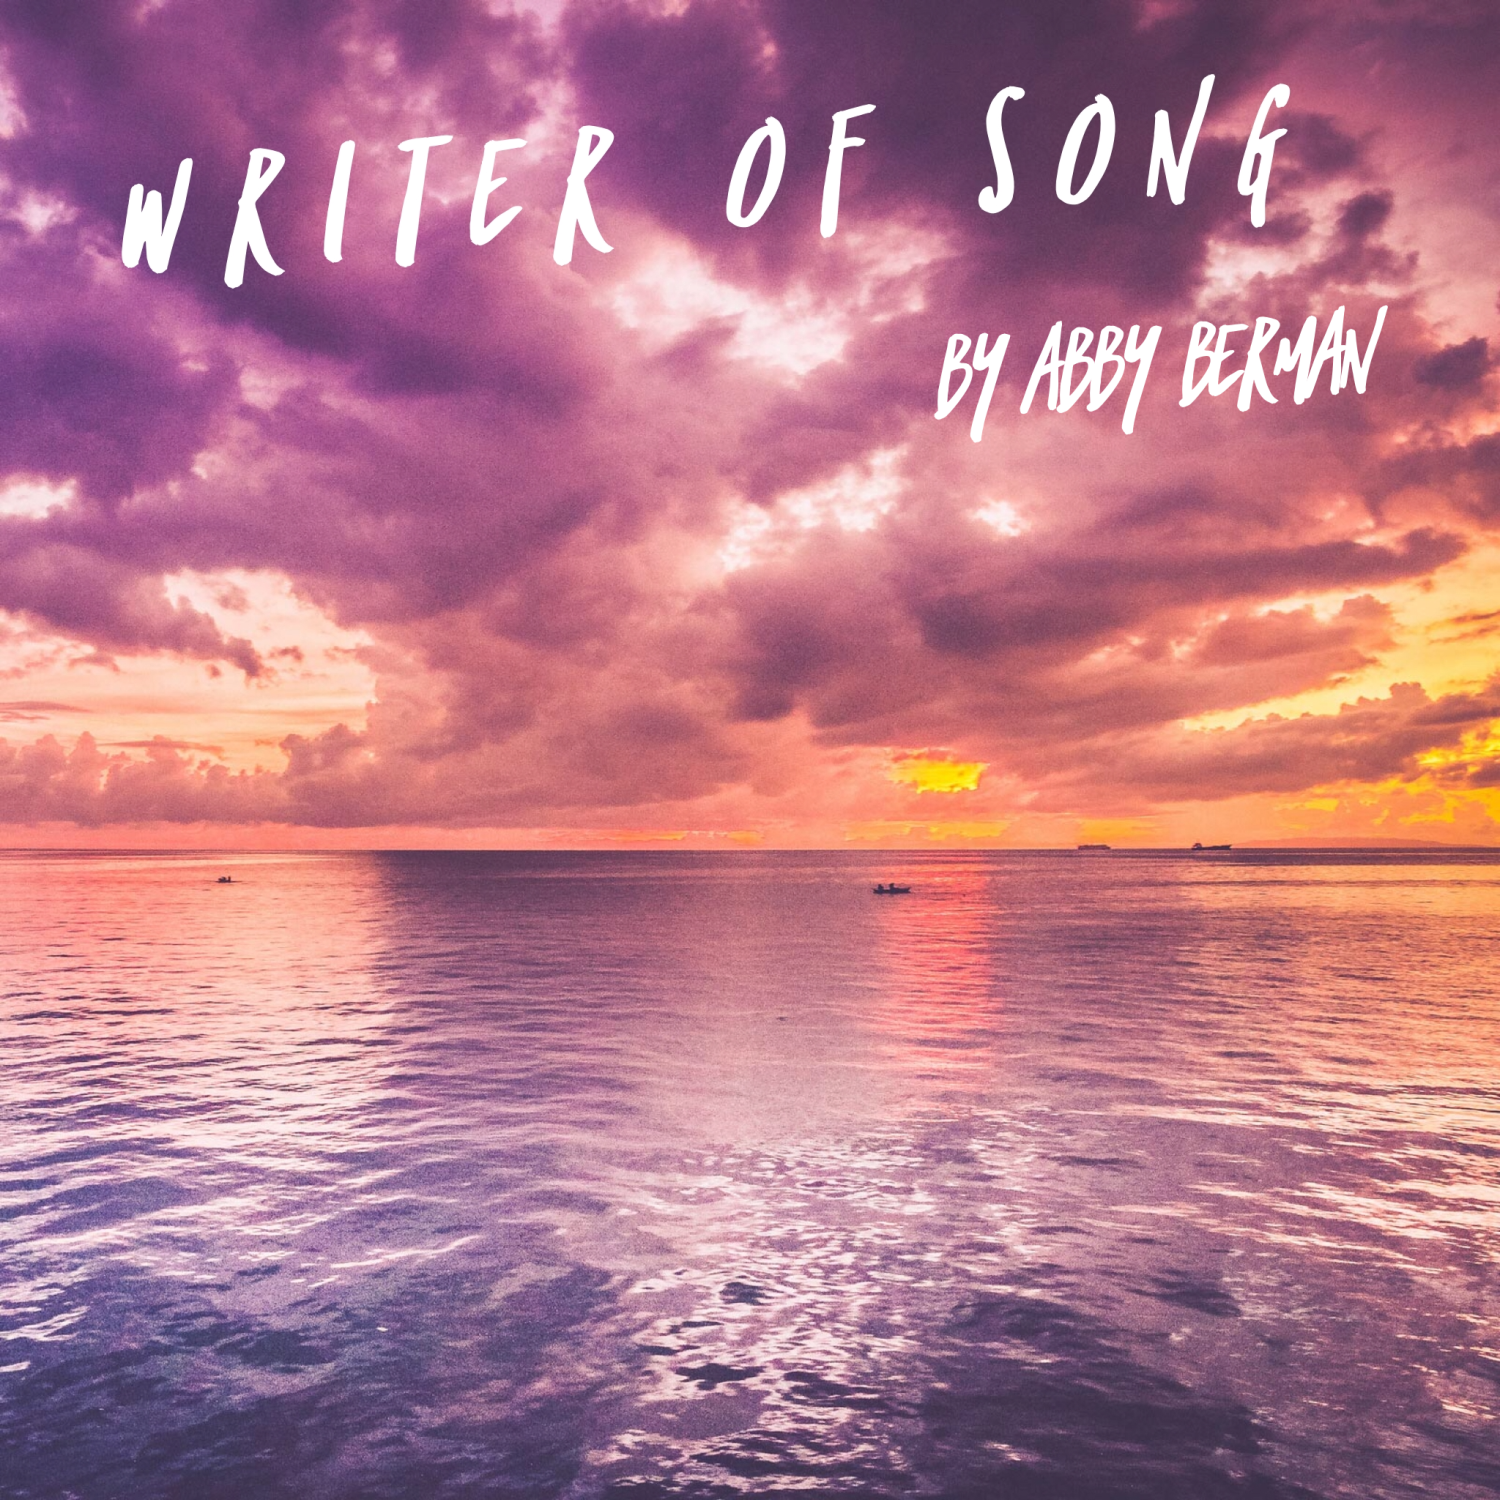 """Writer of Song"", a song by Abby Berman, www.tracingabby.com"